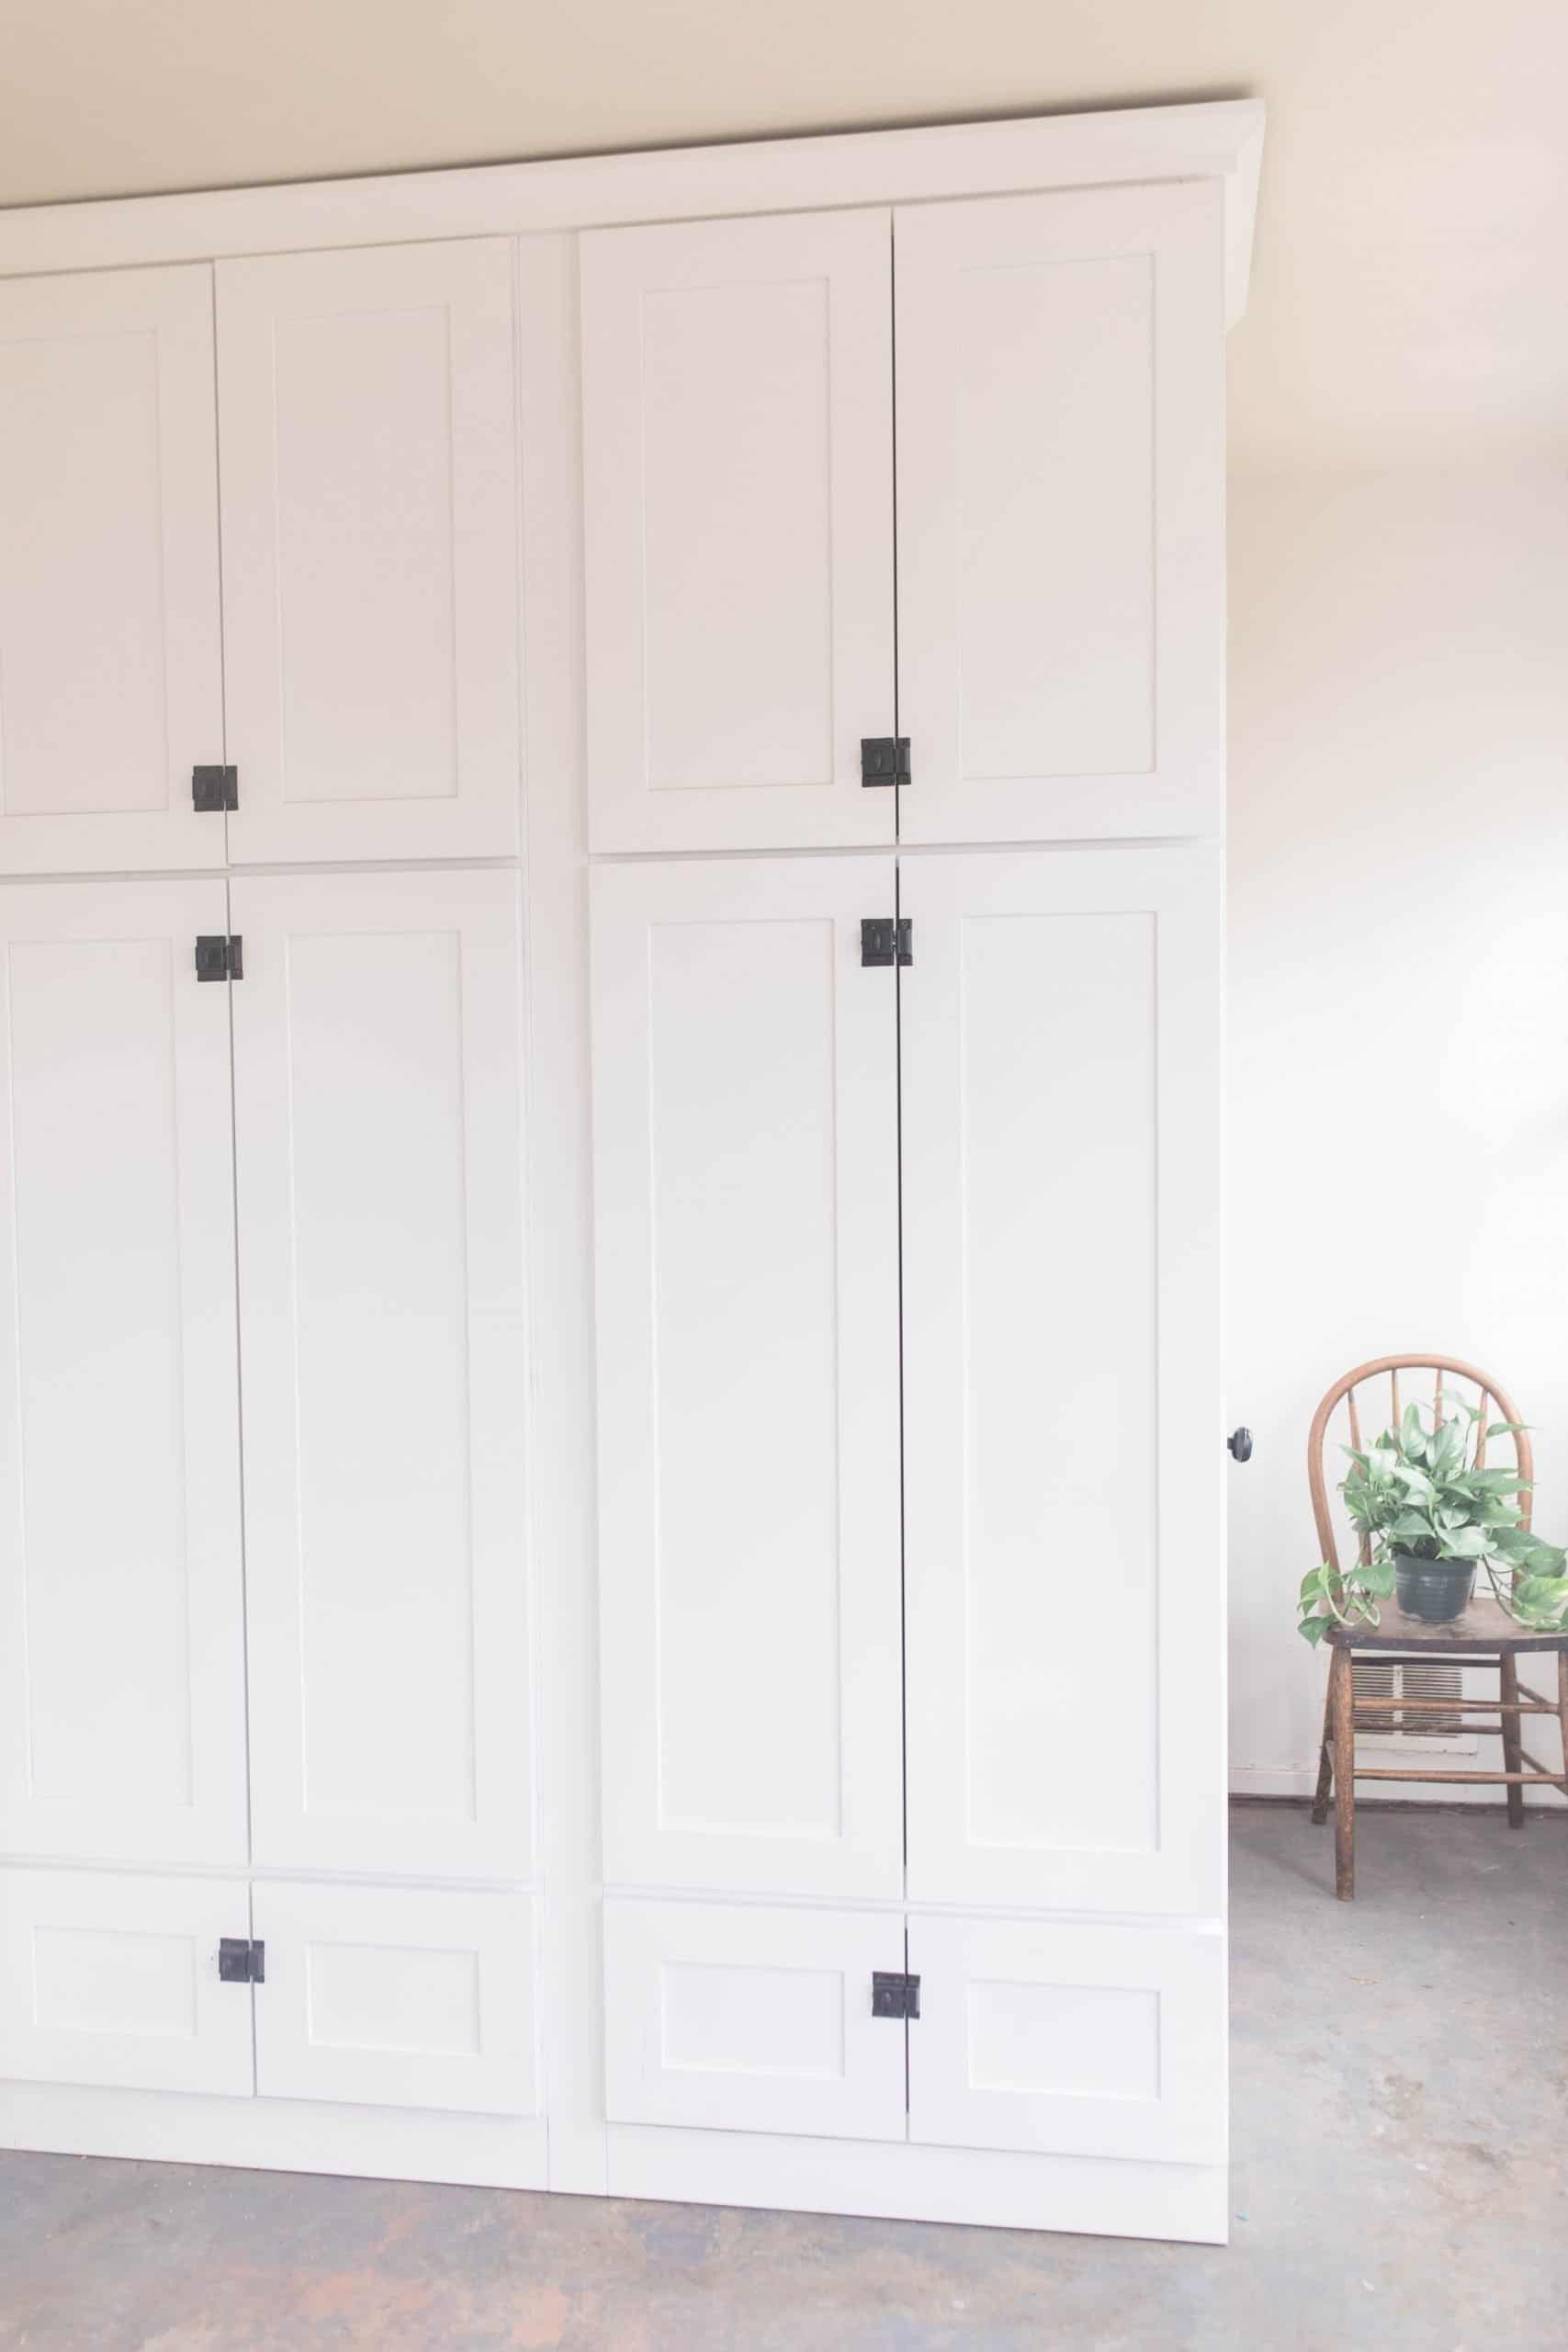 farmhouse mudroom with large white cabinets with black latches, gray painted floors, and a chair with a plant in the background